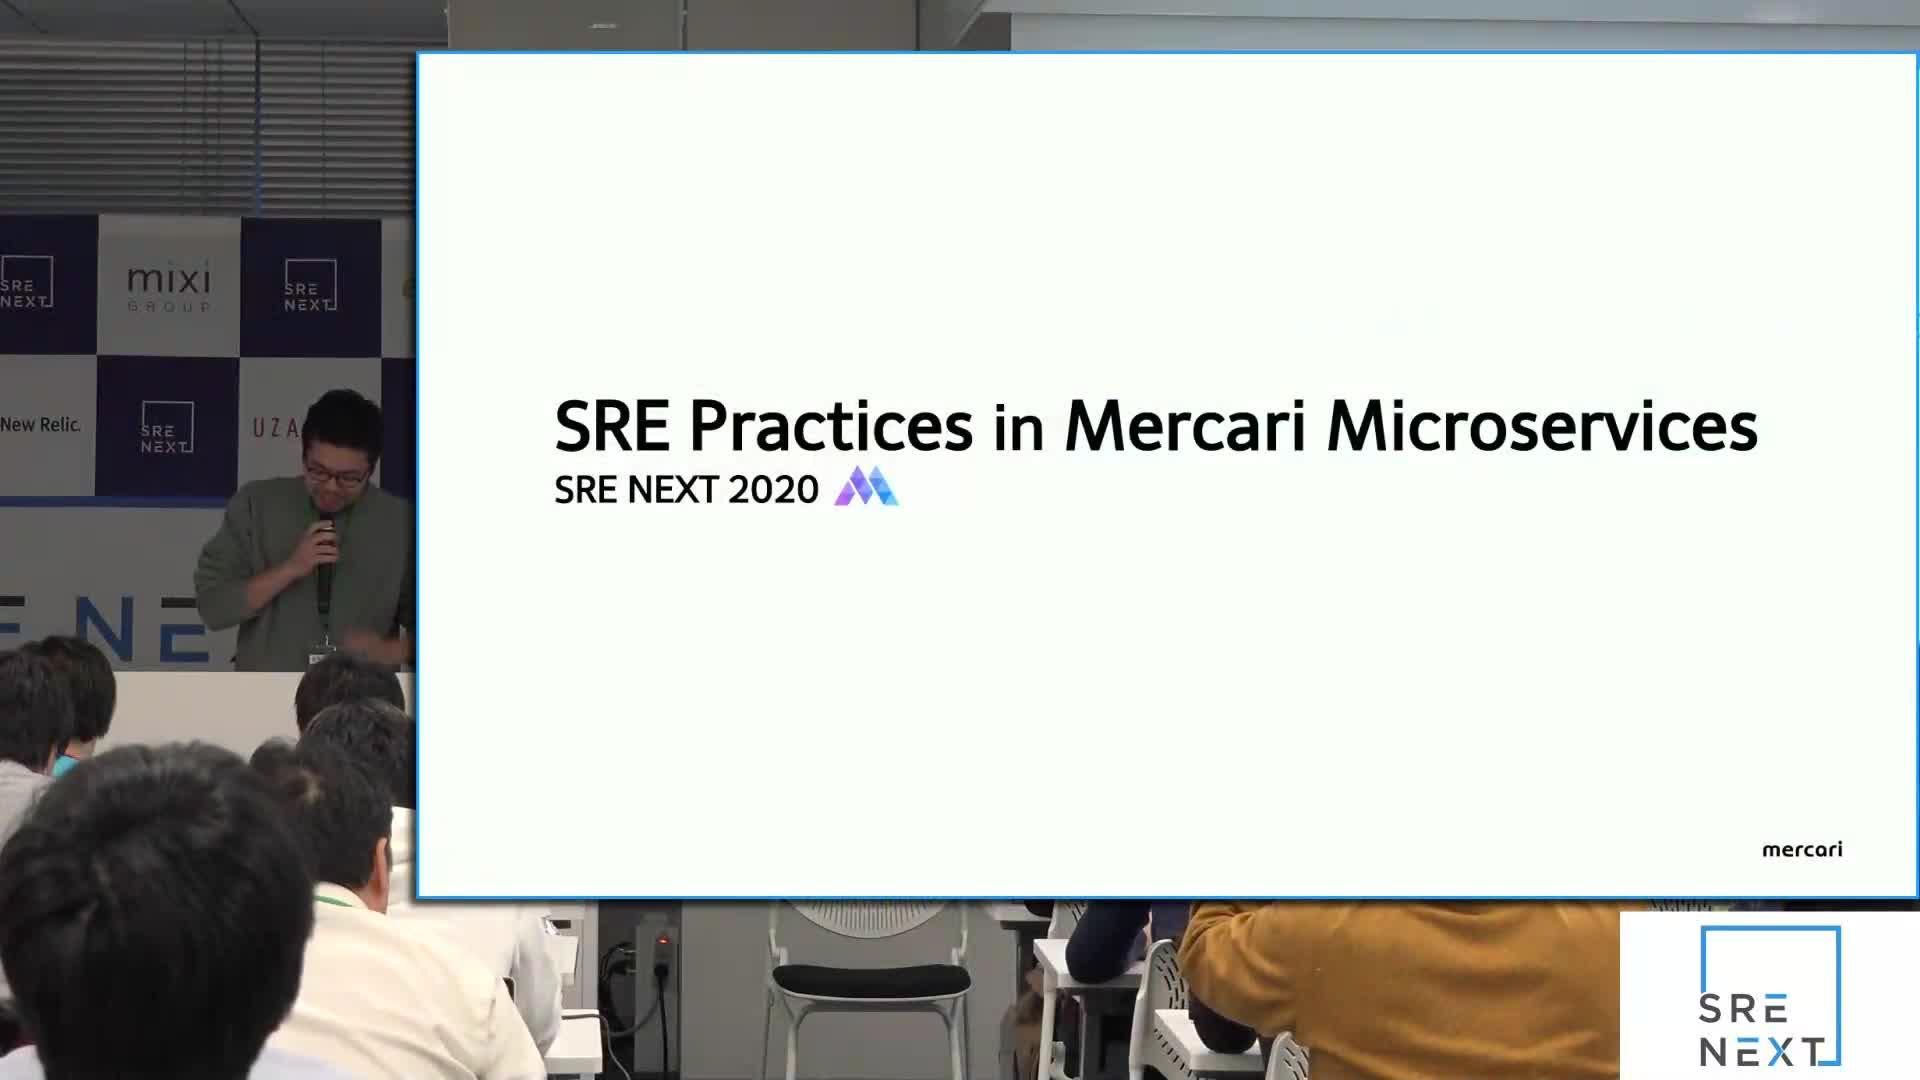 SRE Practices in Mercari Microservices